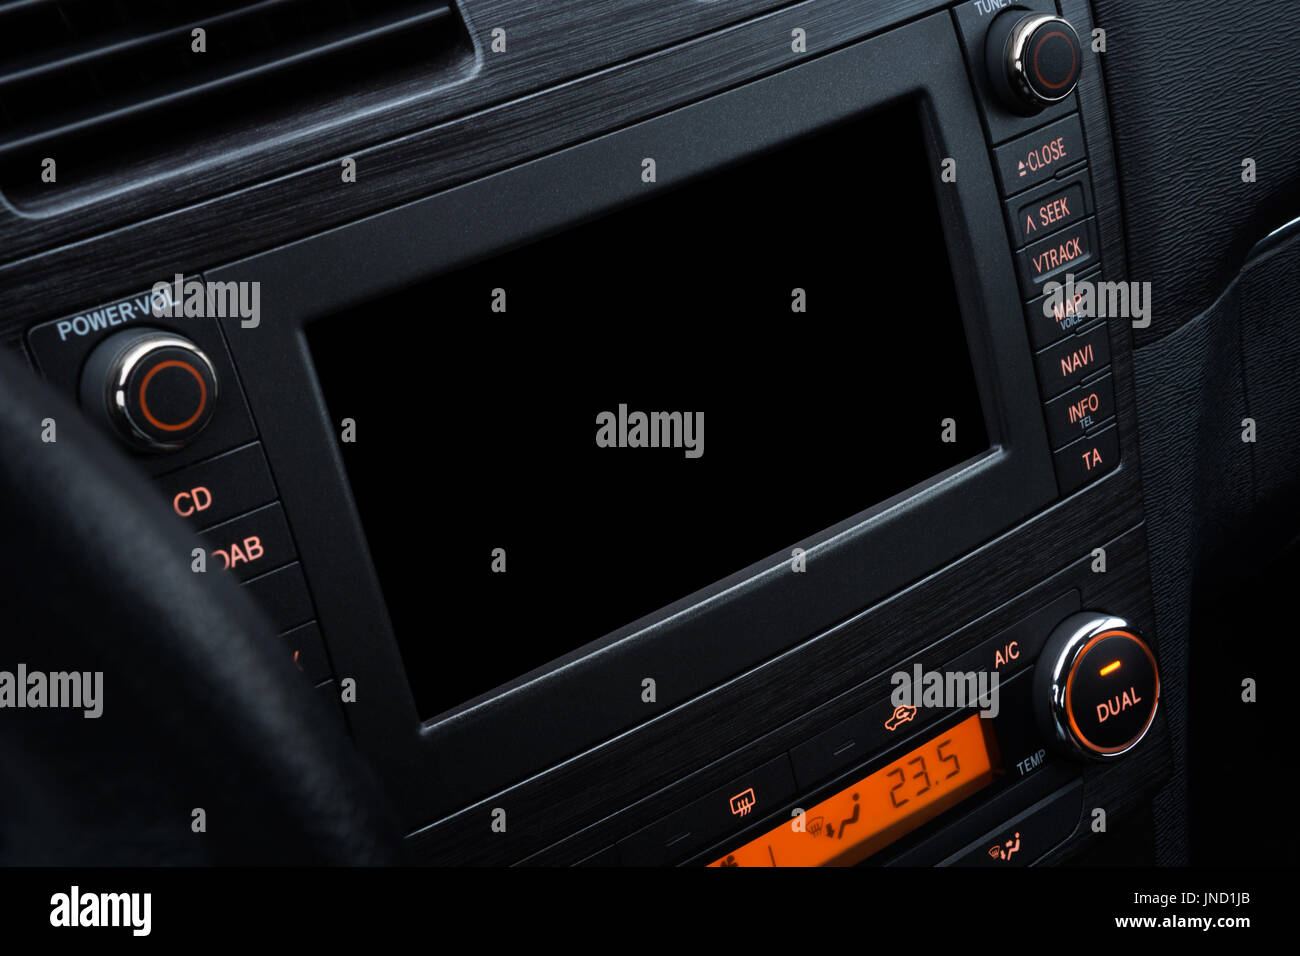 Modern Car Interior Design Console With Board Computer Touch Screen For Multimedia And Navigation System Mockup Closeup View